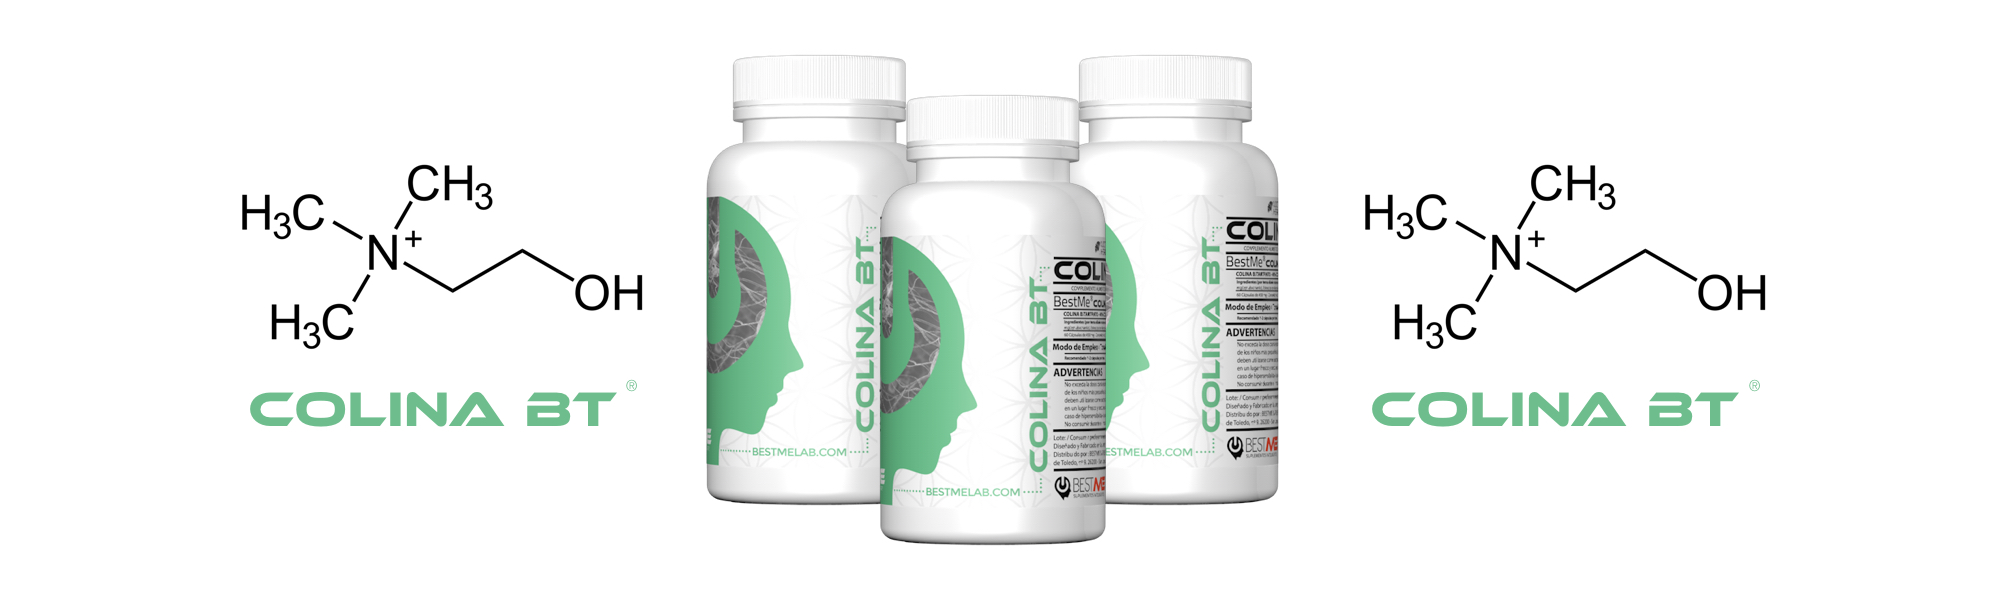 nootropic herbs COLINA AMAZON APAISADO .002